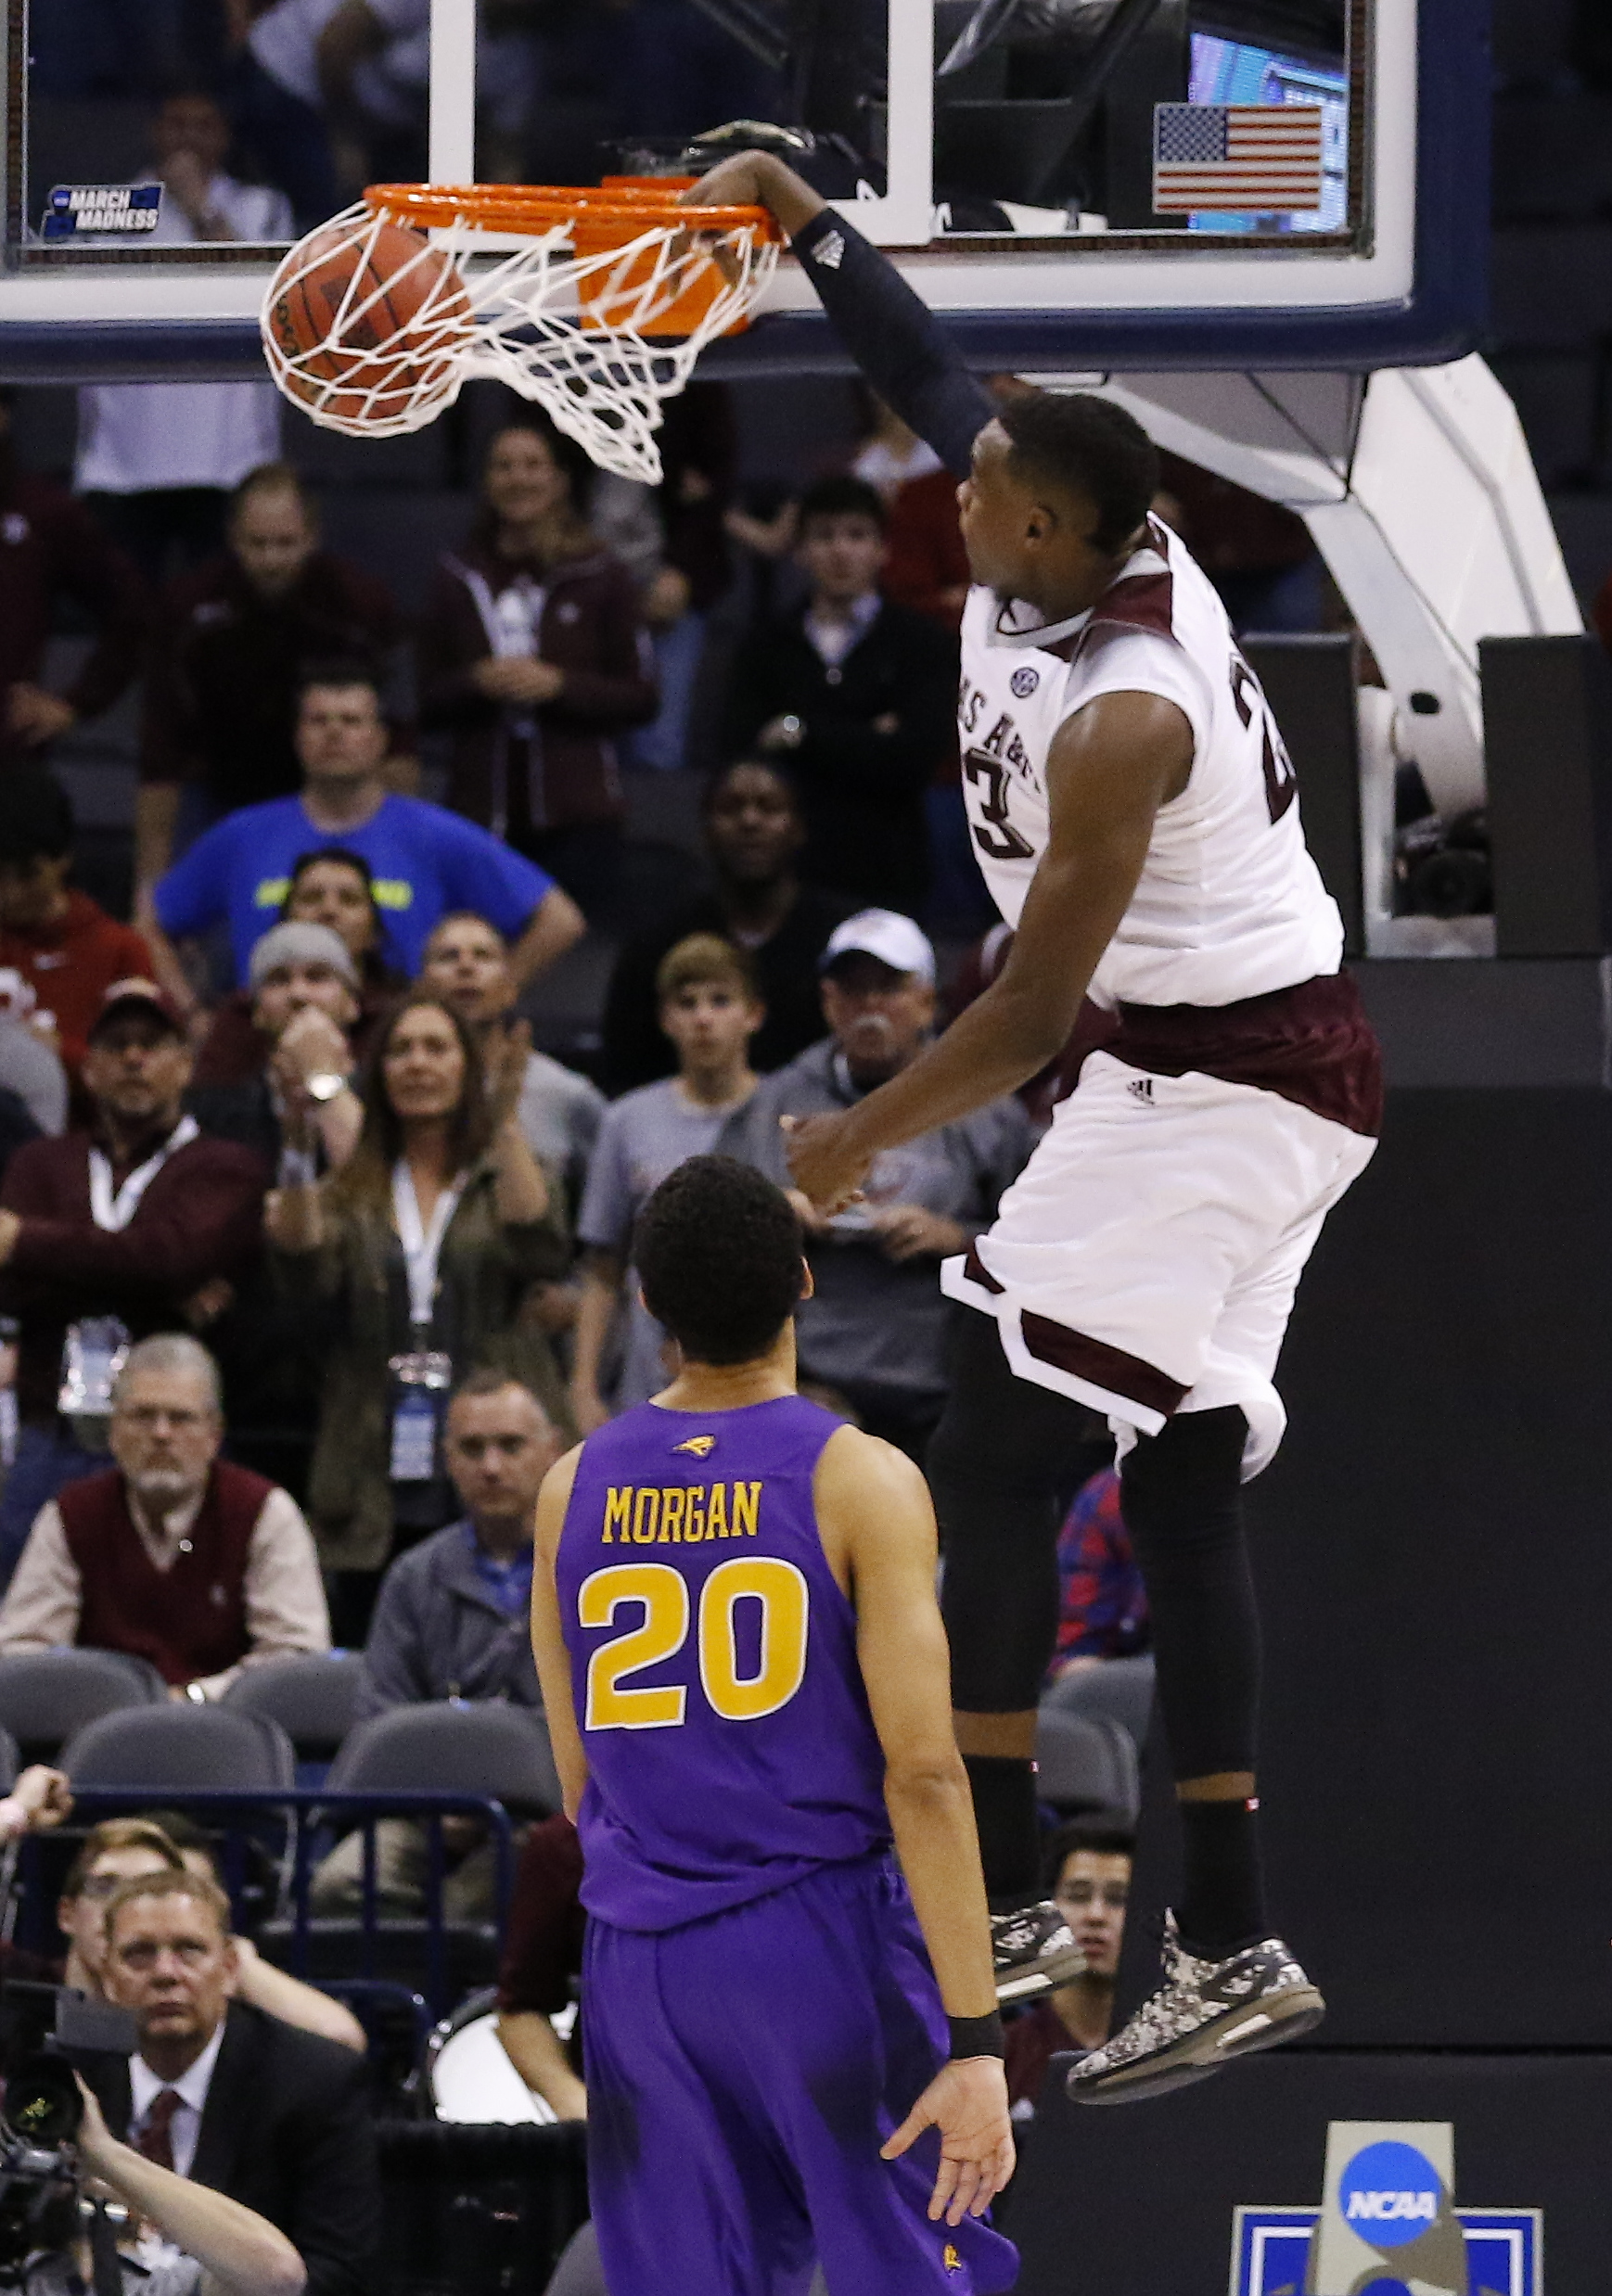 Texas A&M guard Danuel House (23) goes up for a dunk as Northern Iowa guard Jeremy Morgan (20) looks on in the second half during a second-round men's college basketball game in the NCAA Tournament in Oklahoma City, Sunday, March 20, 2016. Texas A&M won i